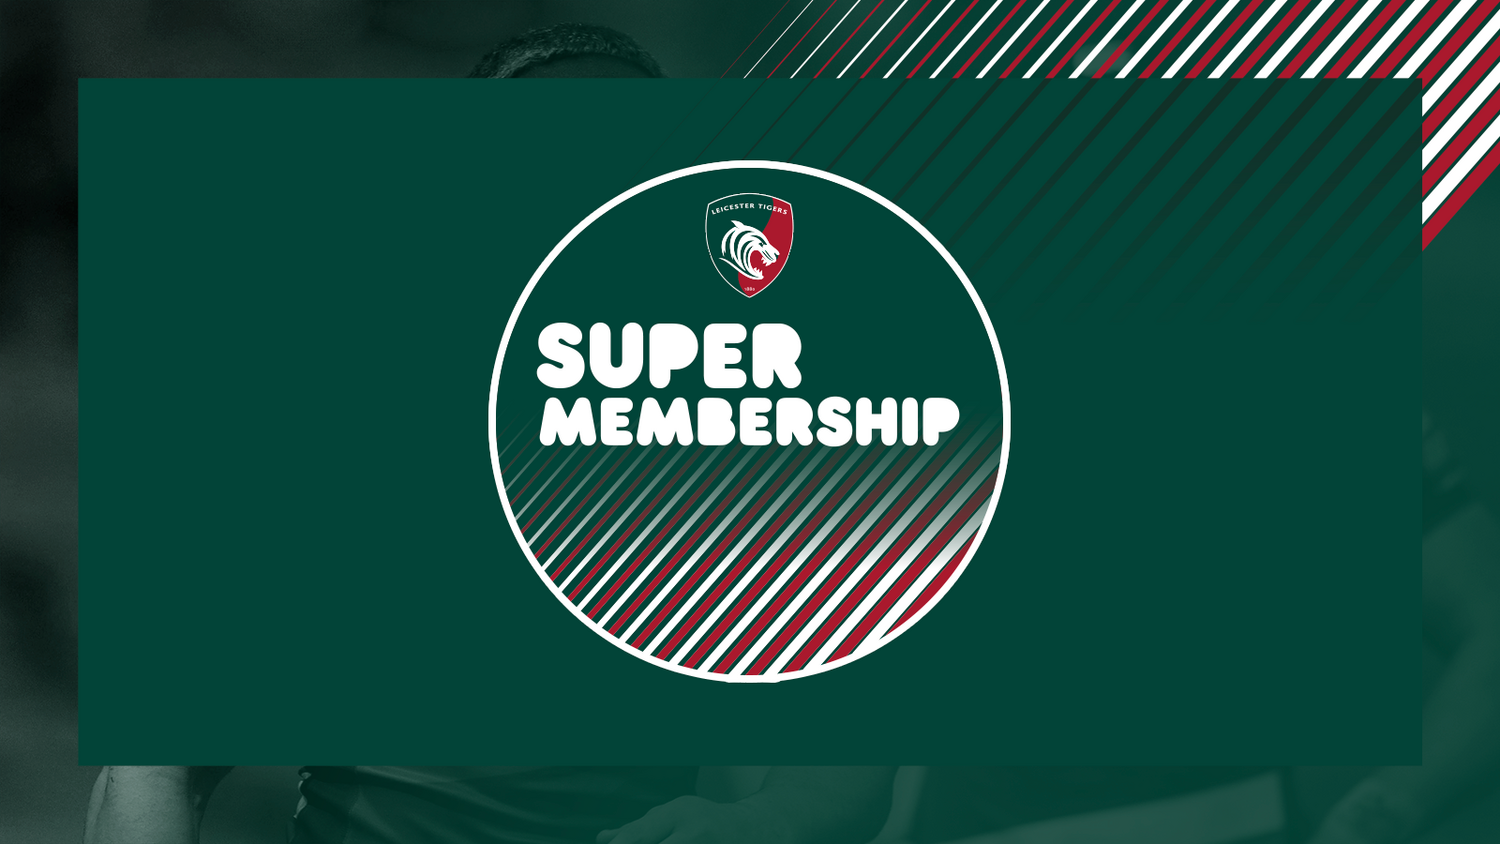 Leicester Tigers Super Membership